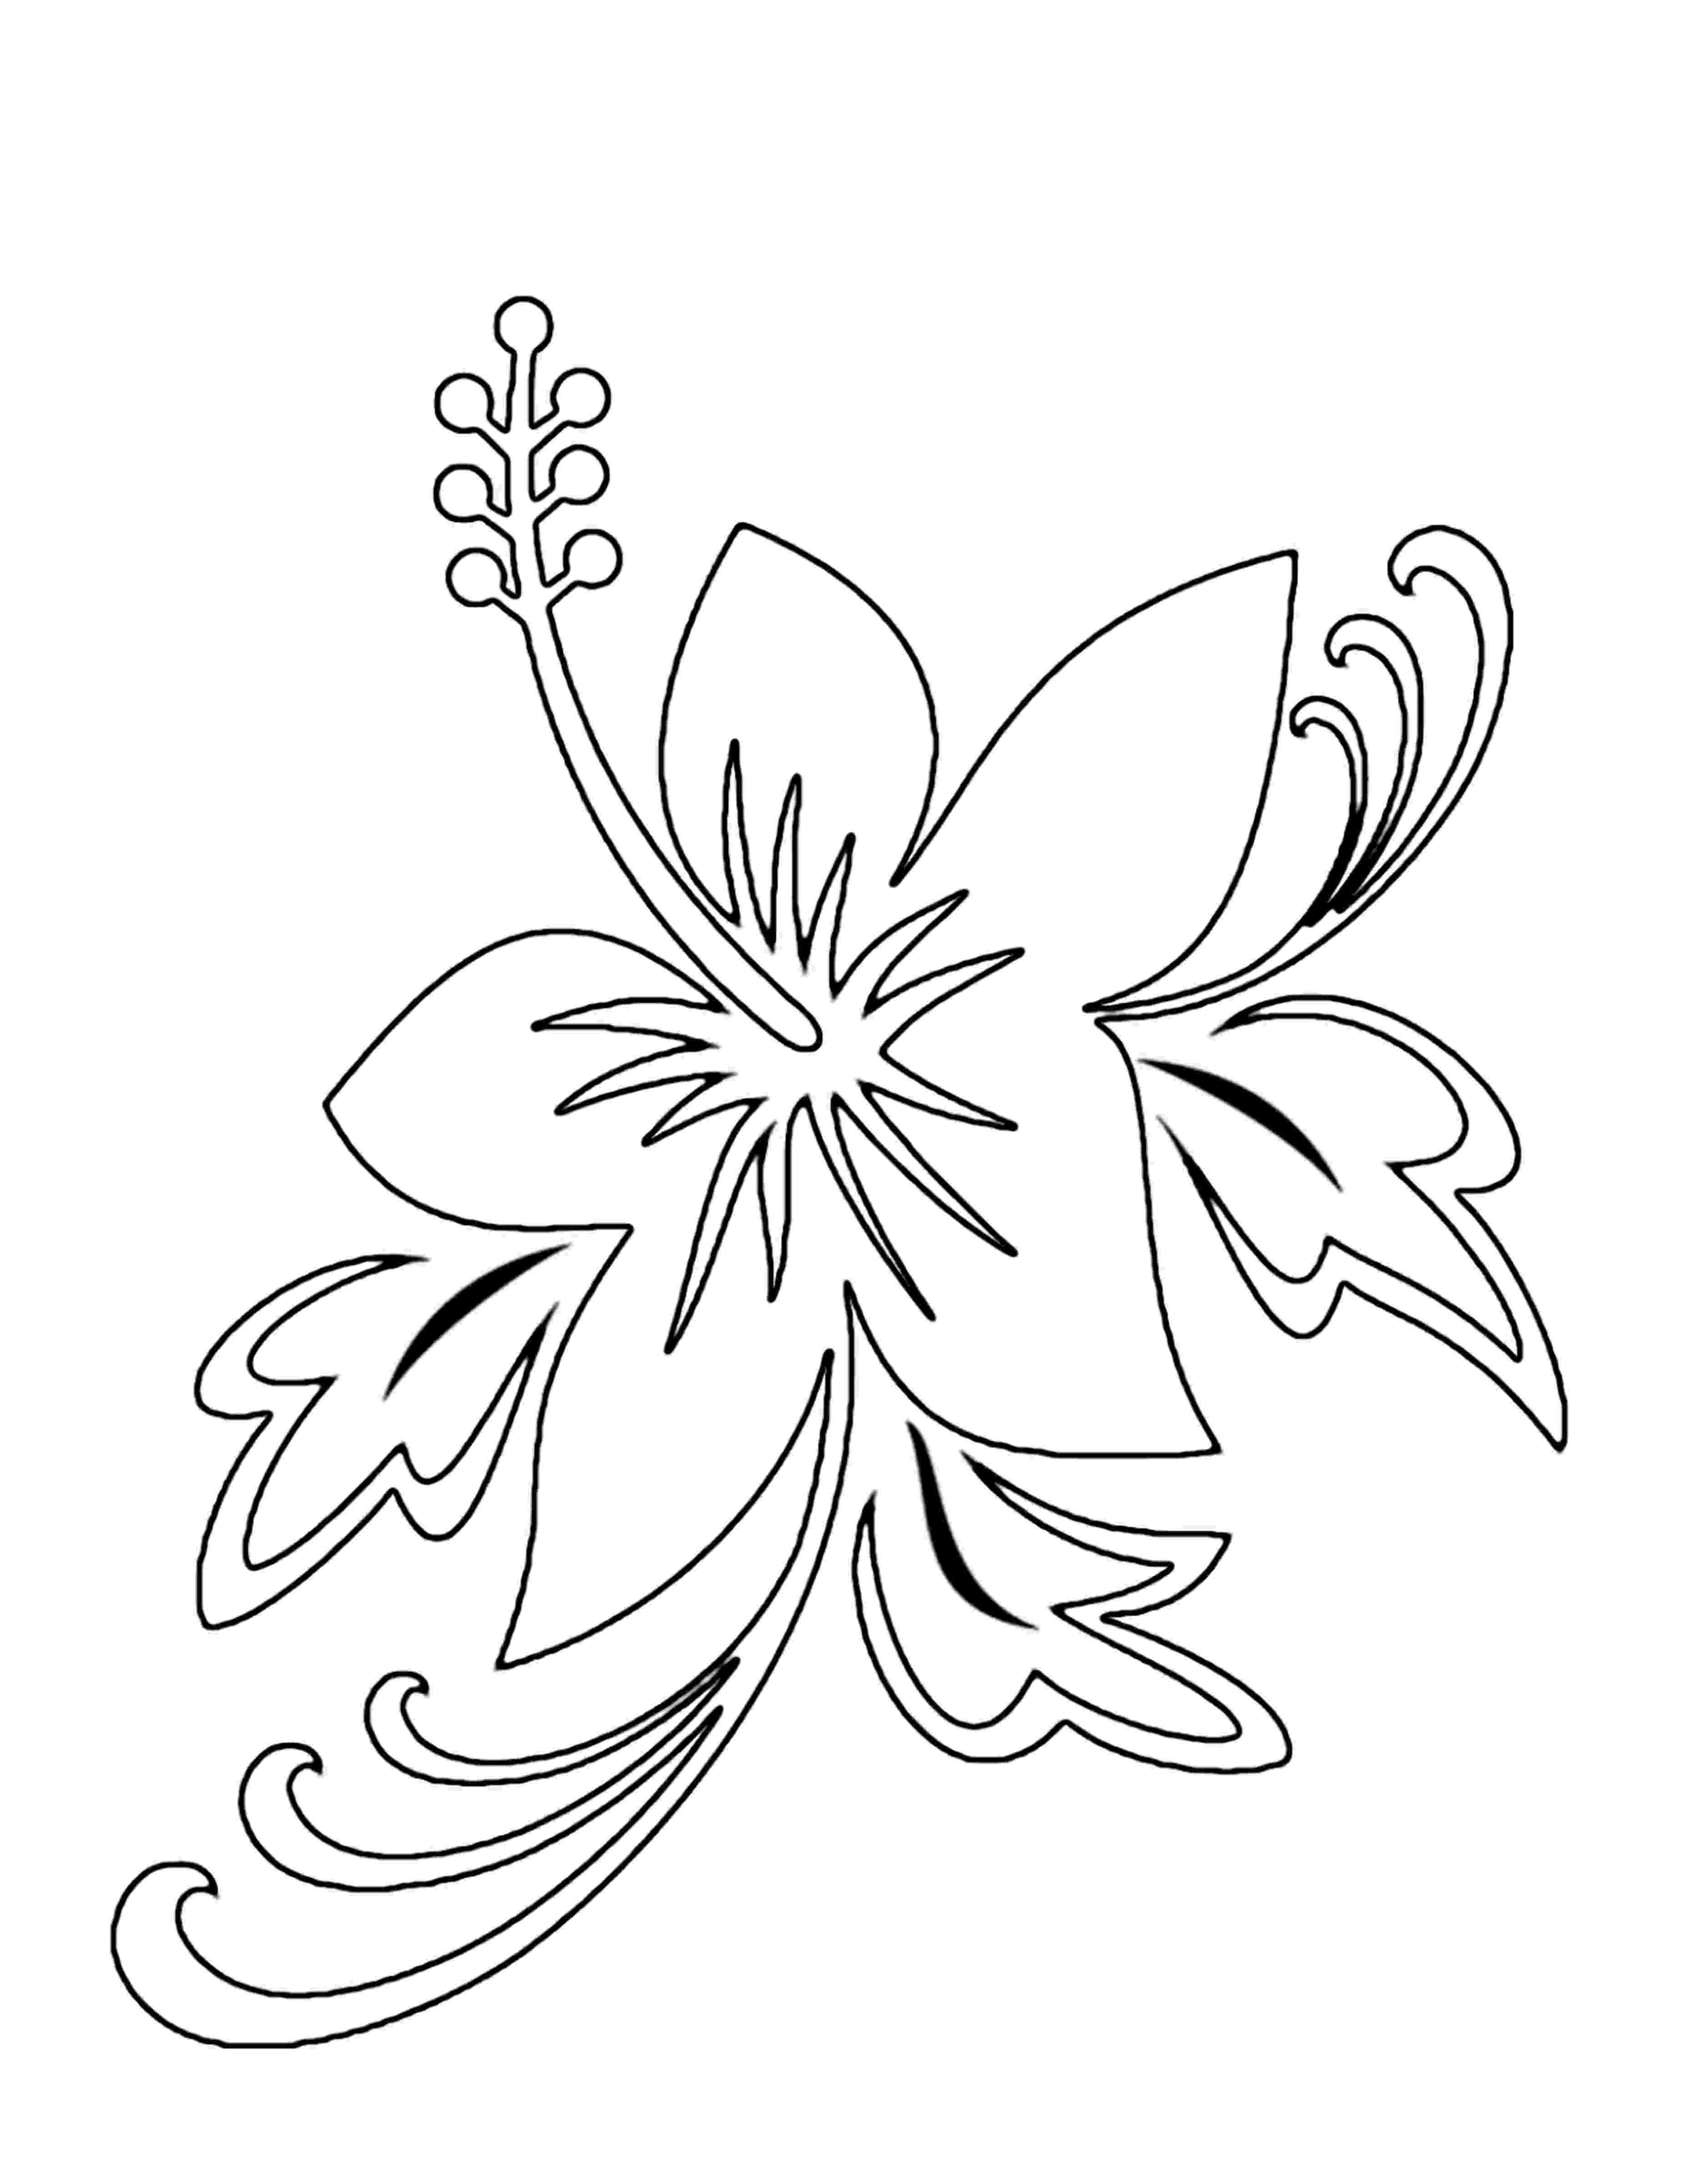 flower images to color free printable flower coloring pages for kids best to images color flower